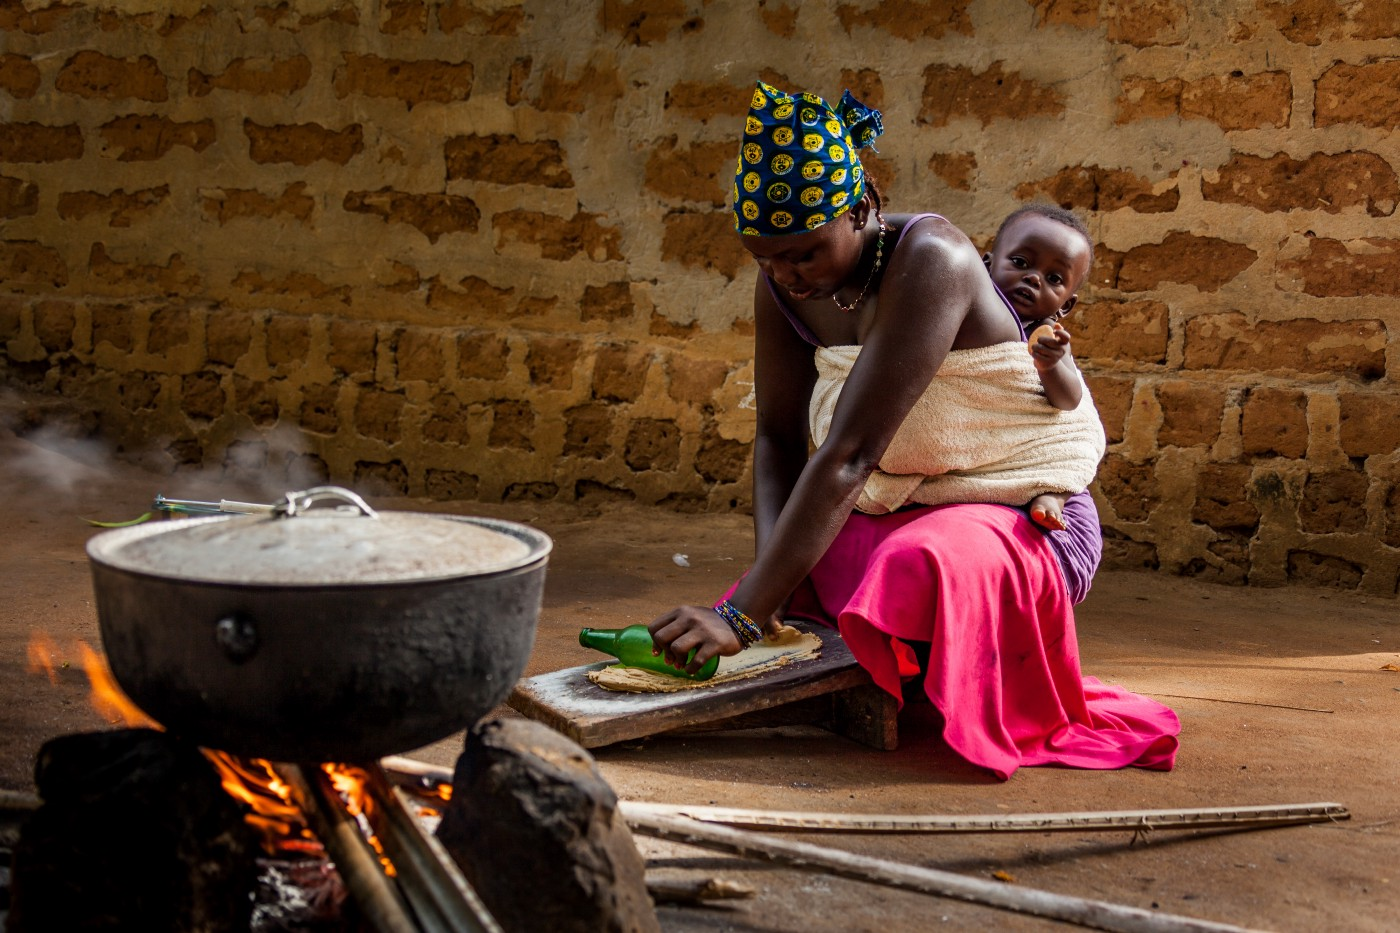 West African woman with a child on her back cooking over a fire.